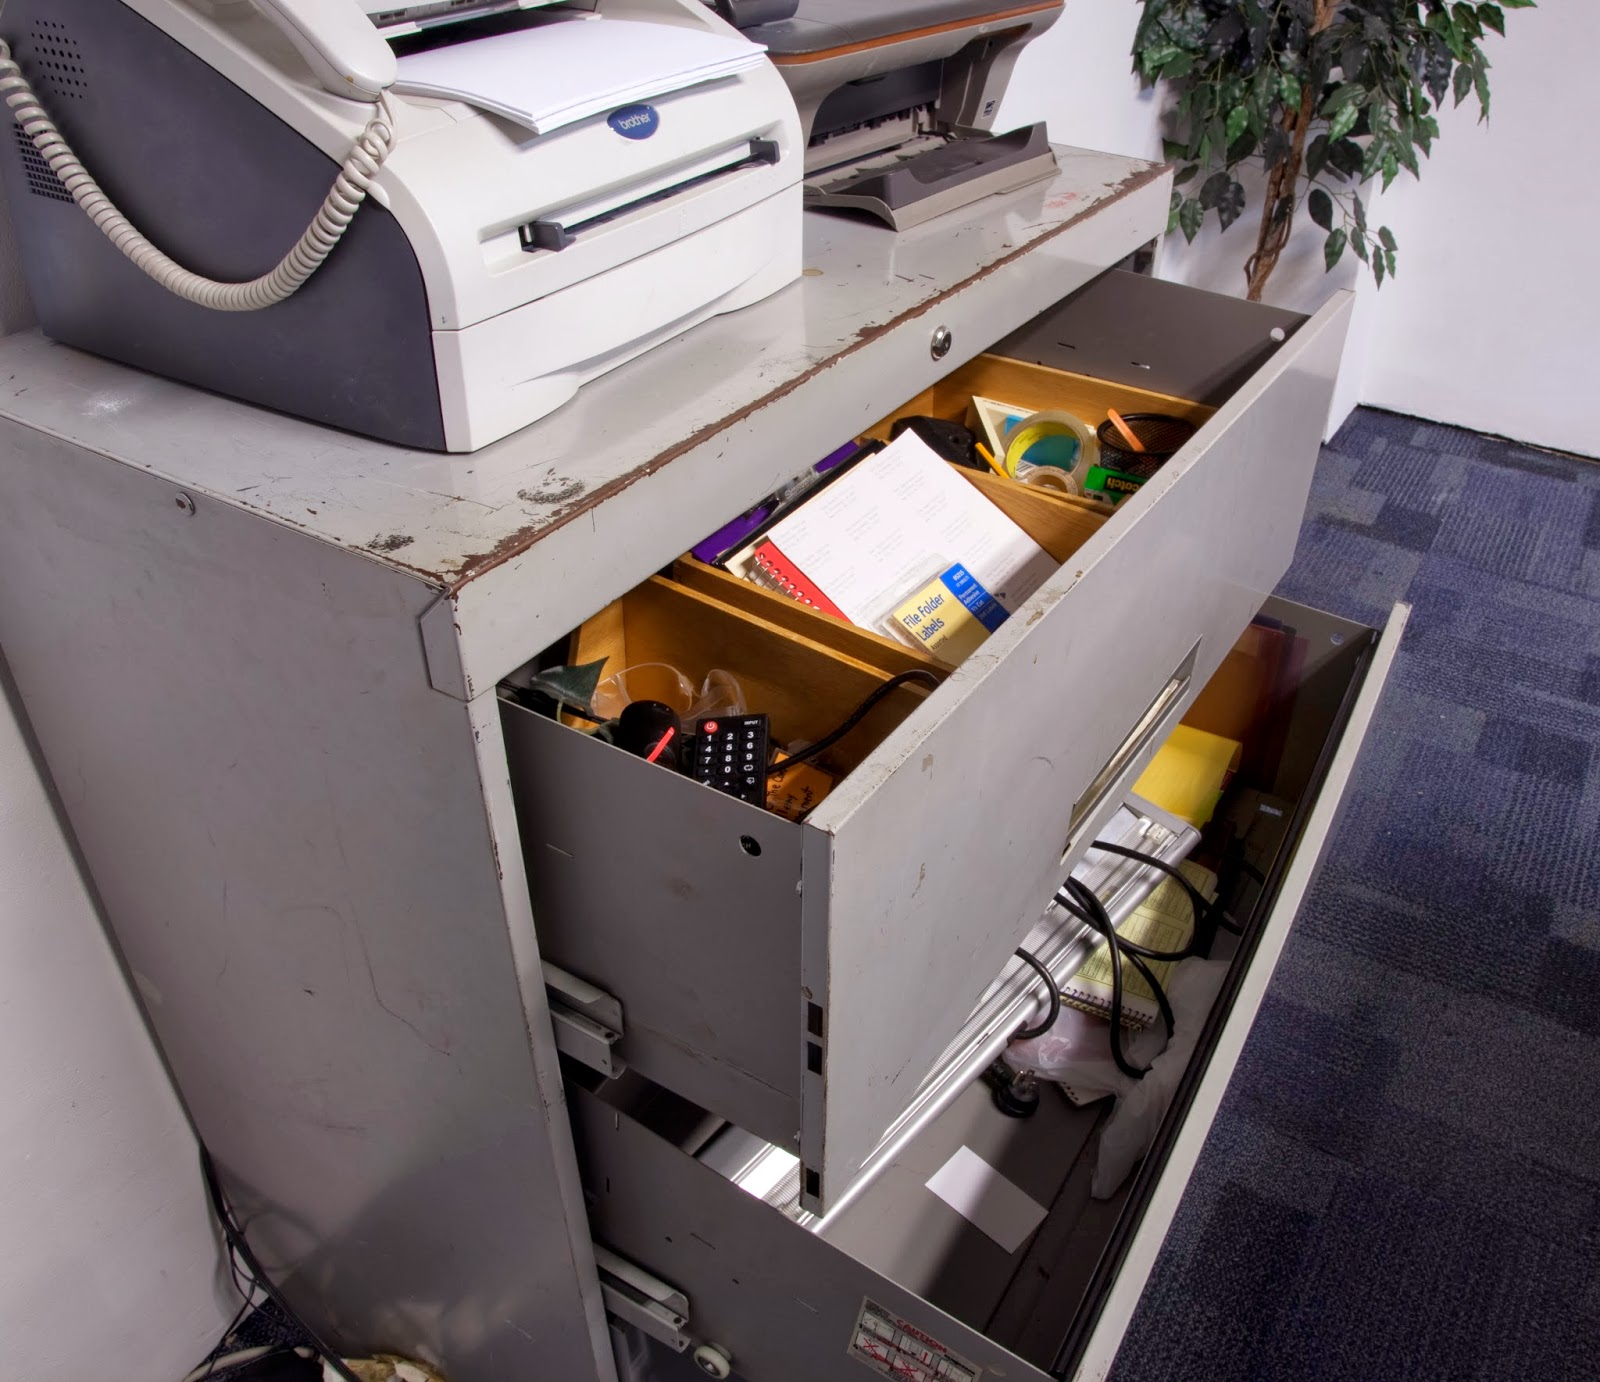 Filing Cabinet Contents